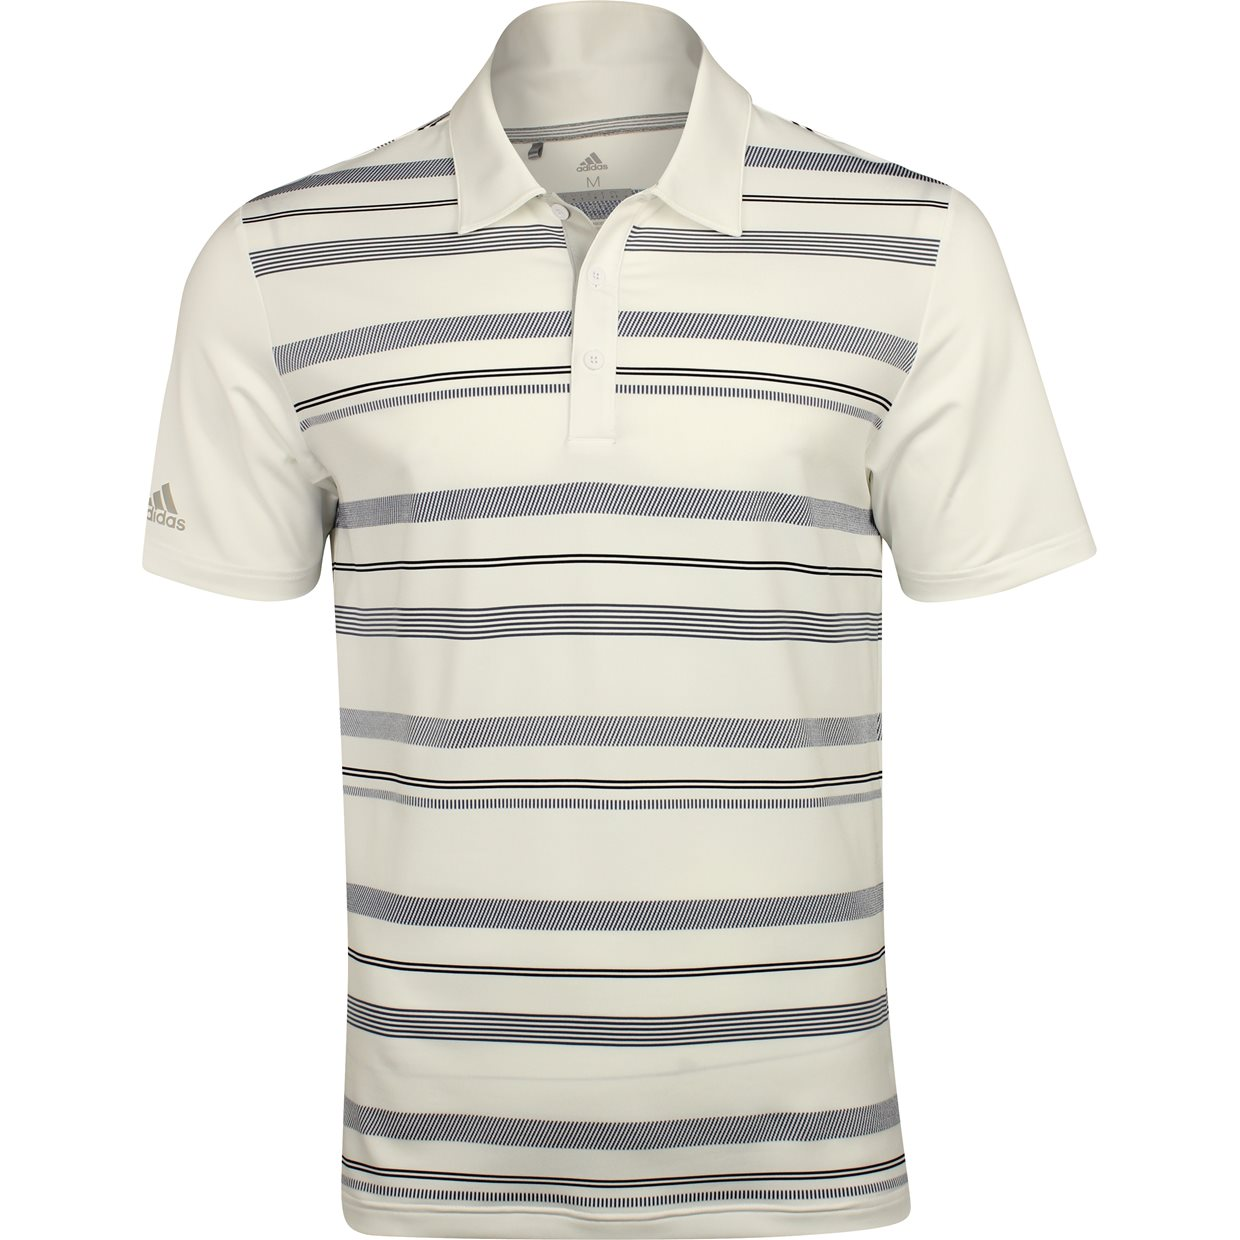 79d2c869 Adidas Ultimate 365 Novelty Stripe Shirt Apparel at GlobalGolf.com